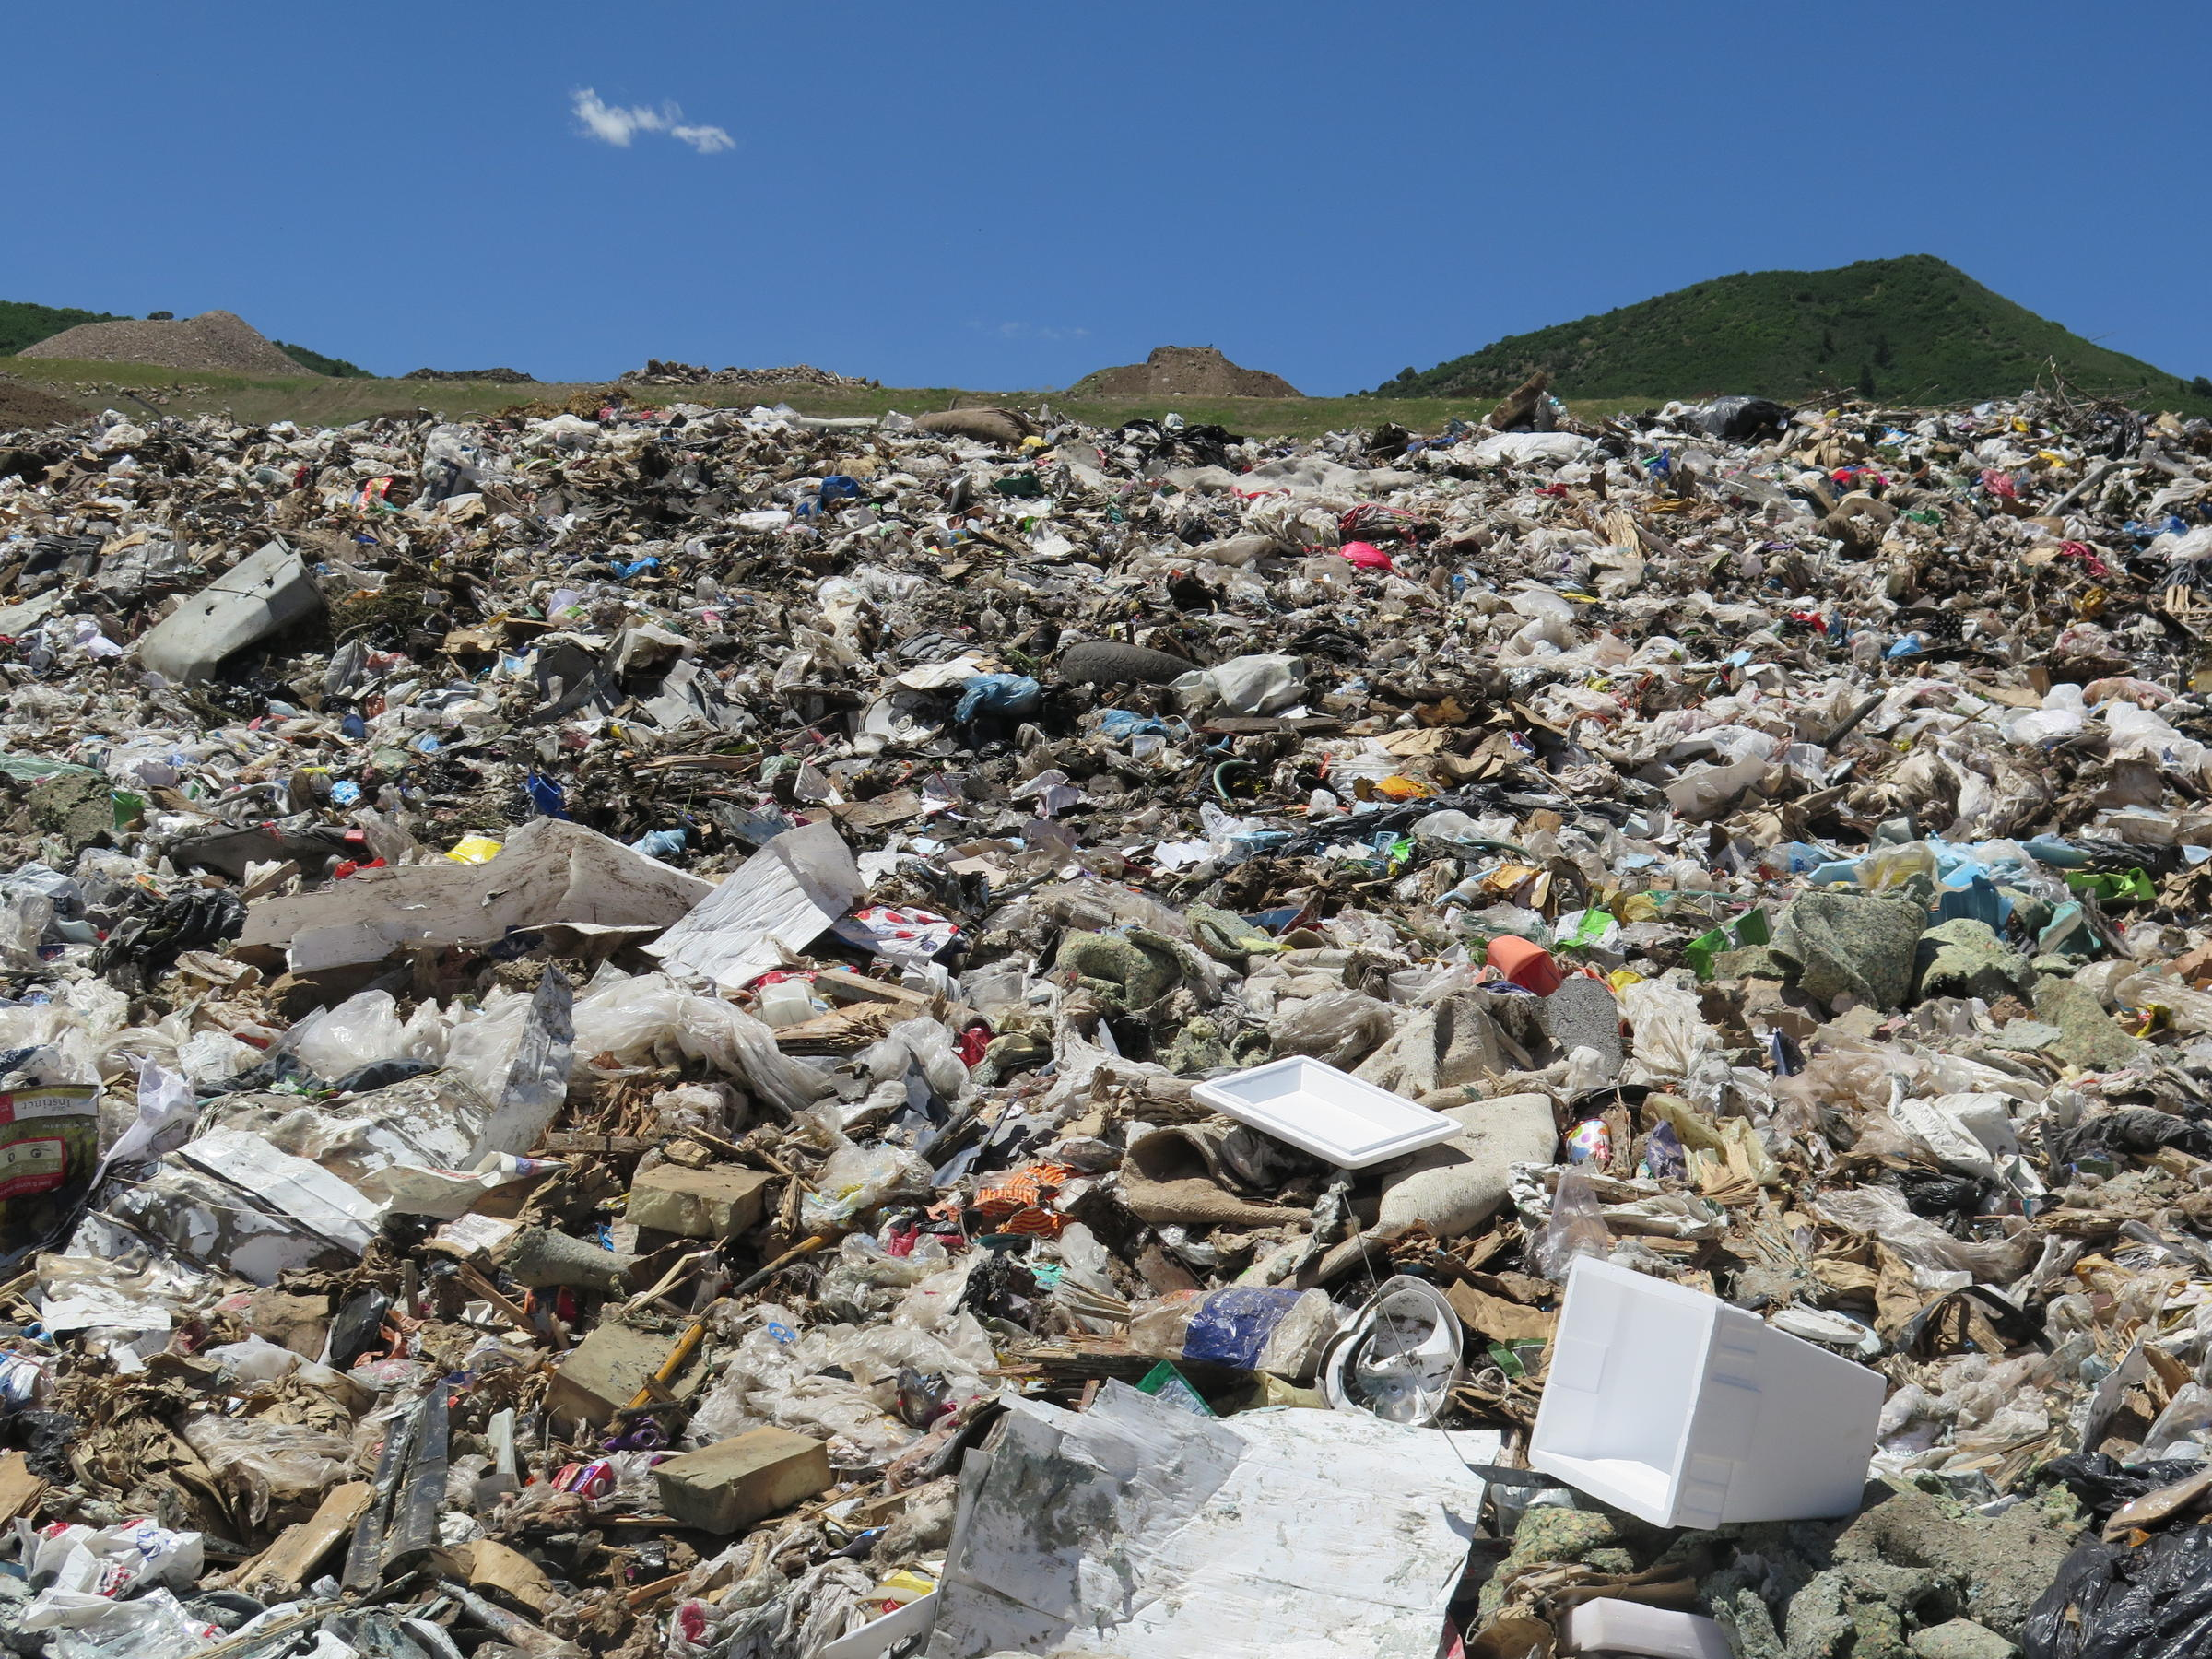 Pitco 39 talking trash 39 to extend landfill life aspen for Anything of waste material